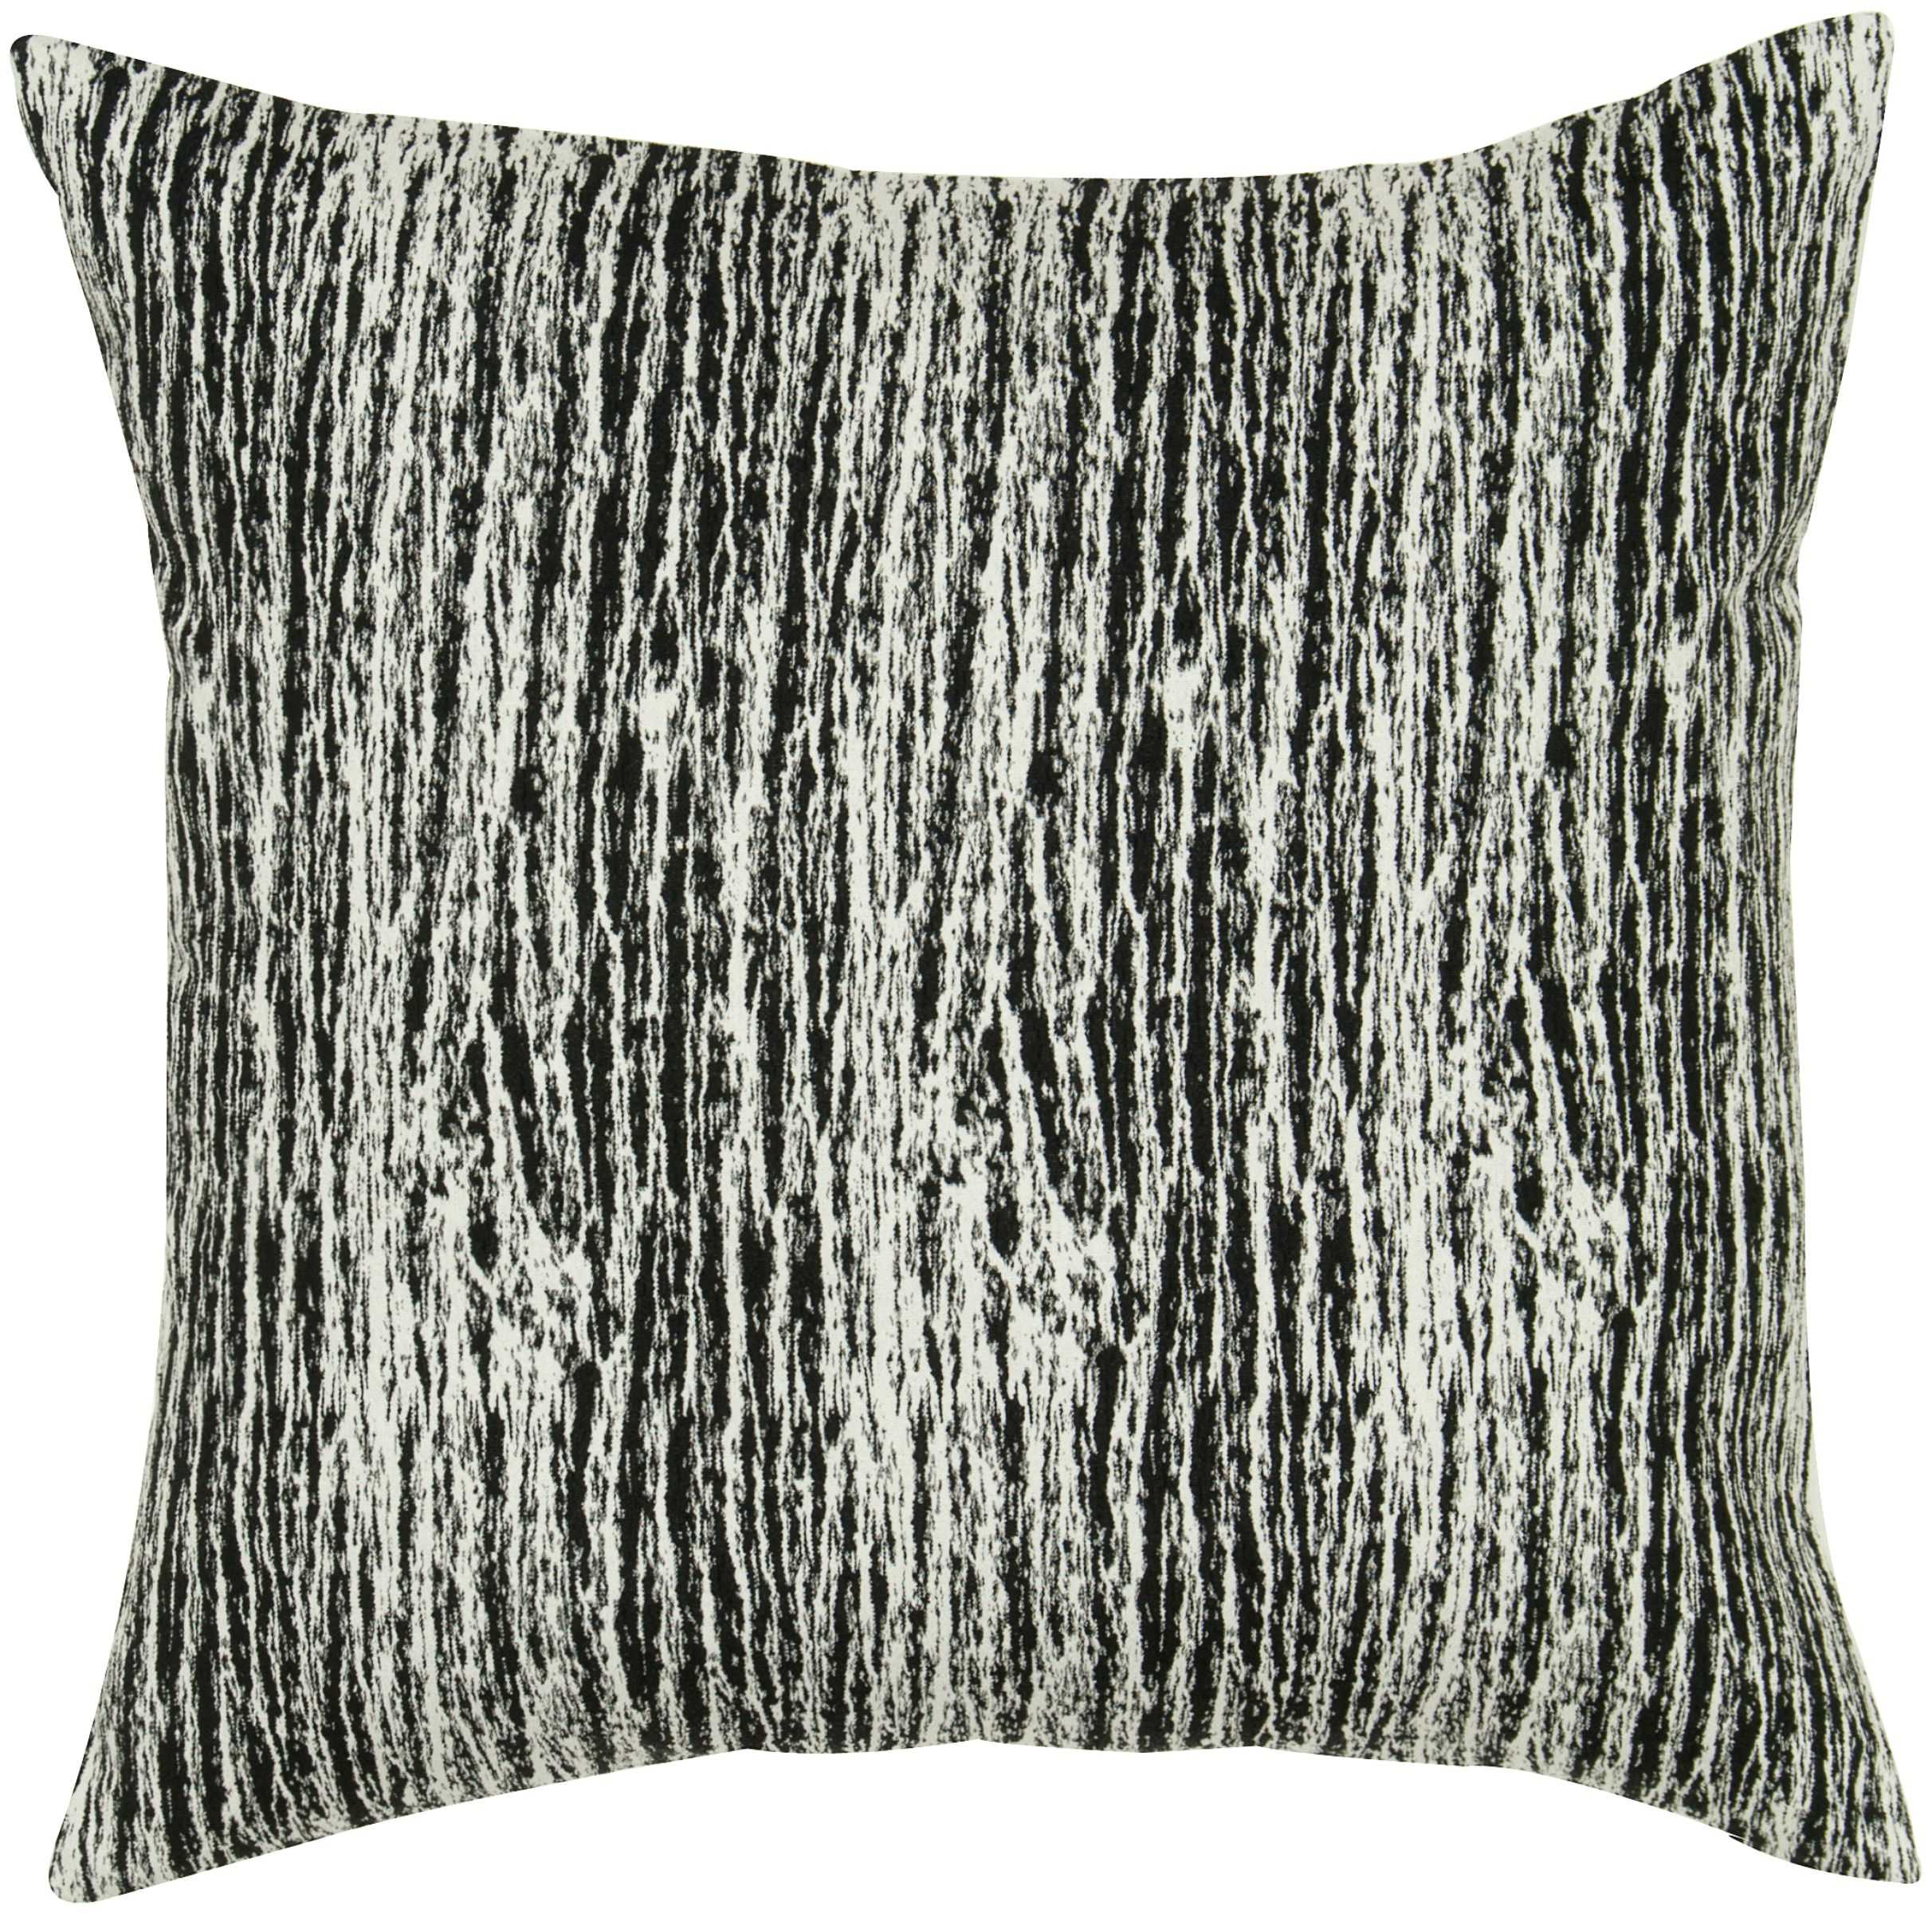 "Rizzy home T05534 18"" x 18"" black cotton decorative filled pillow"